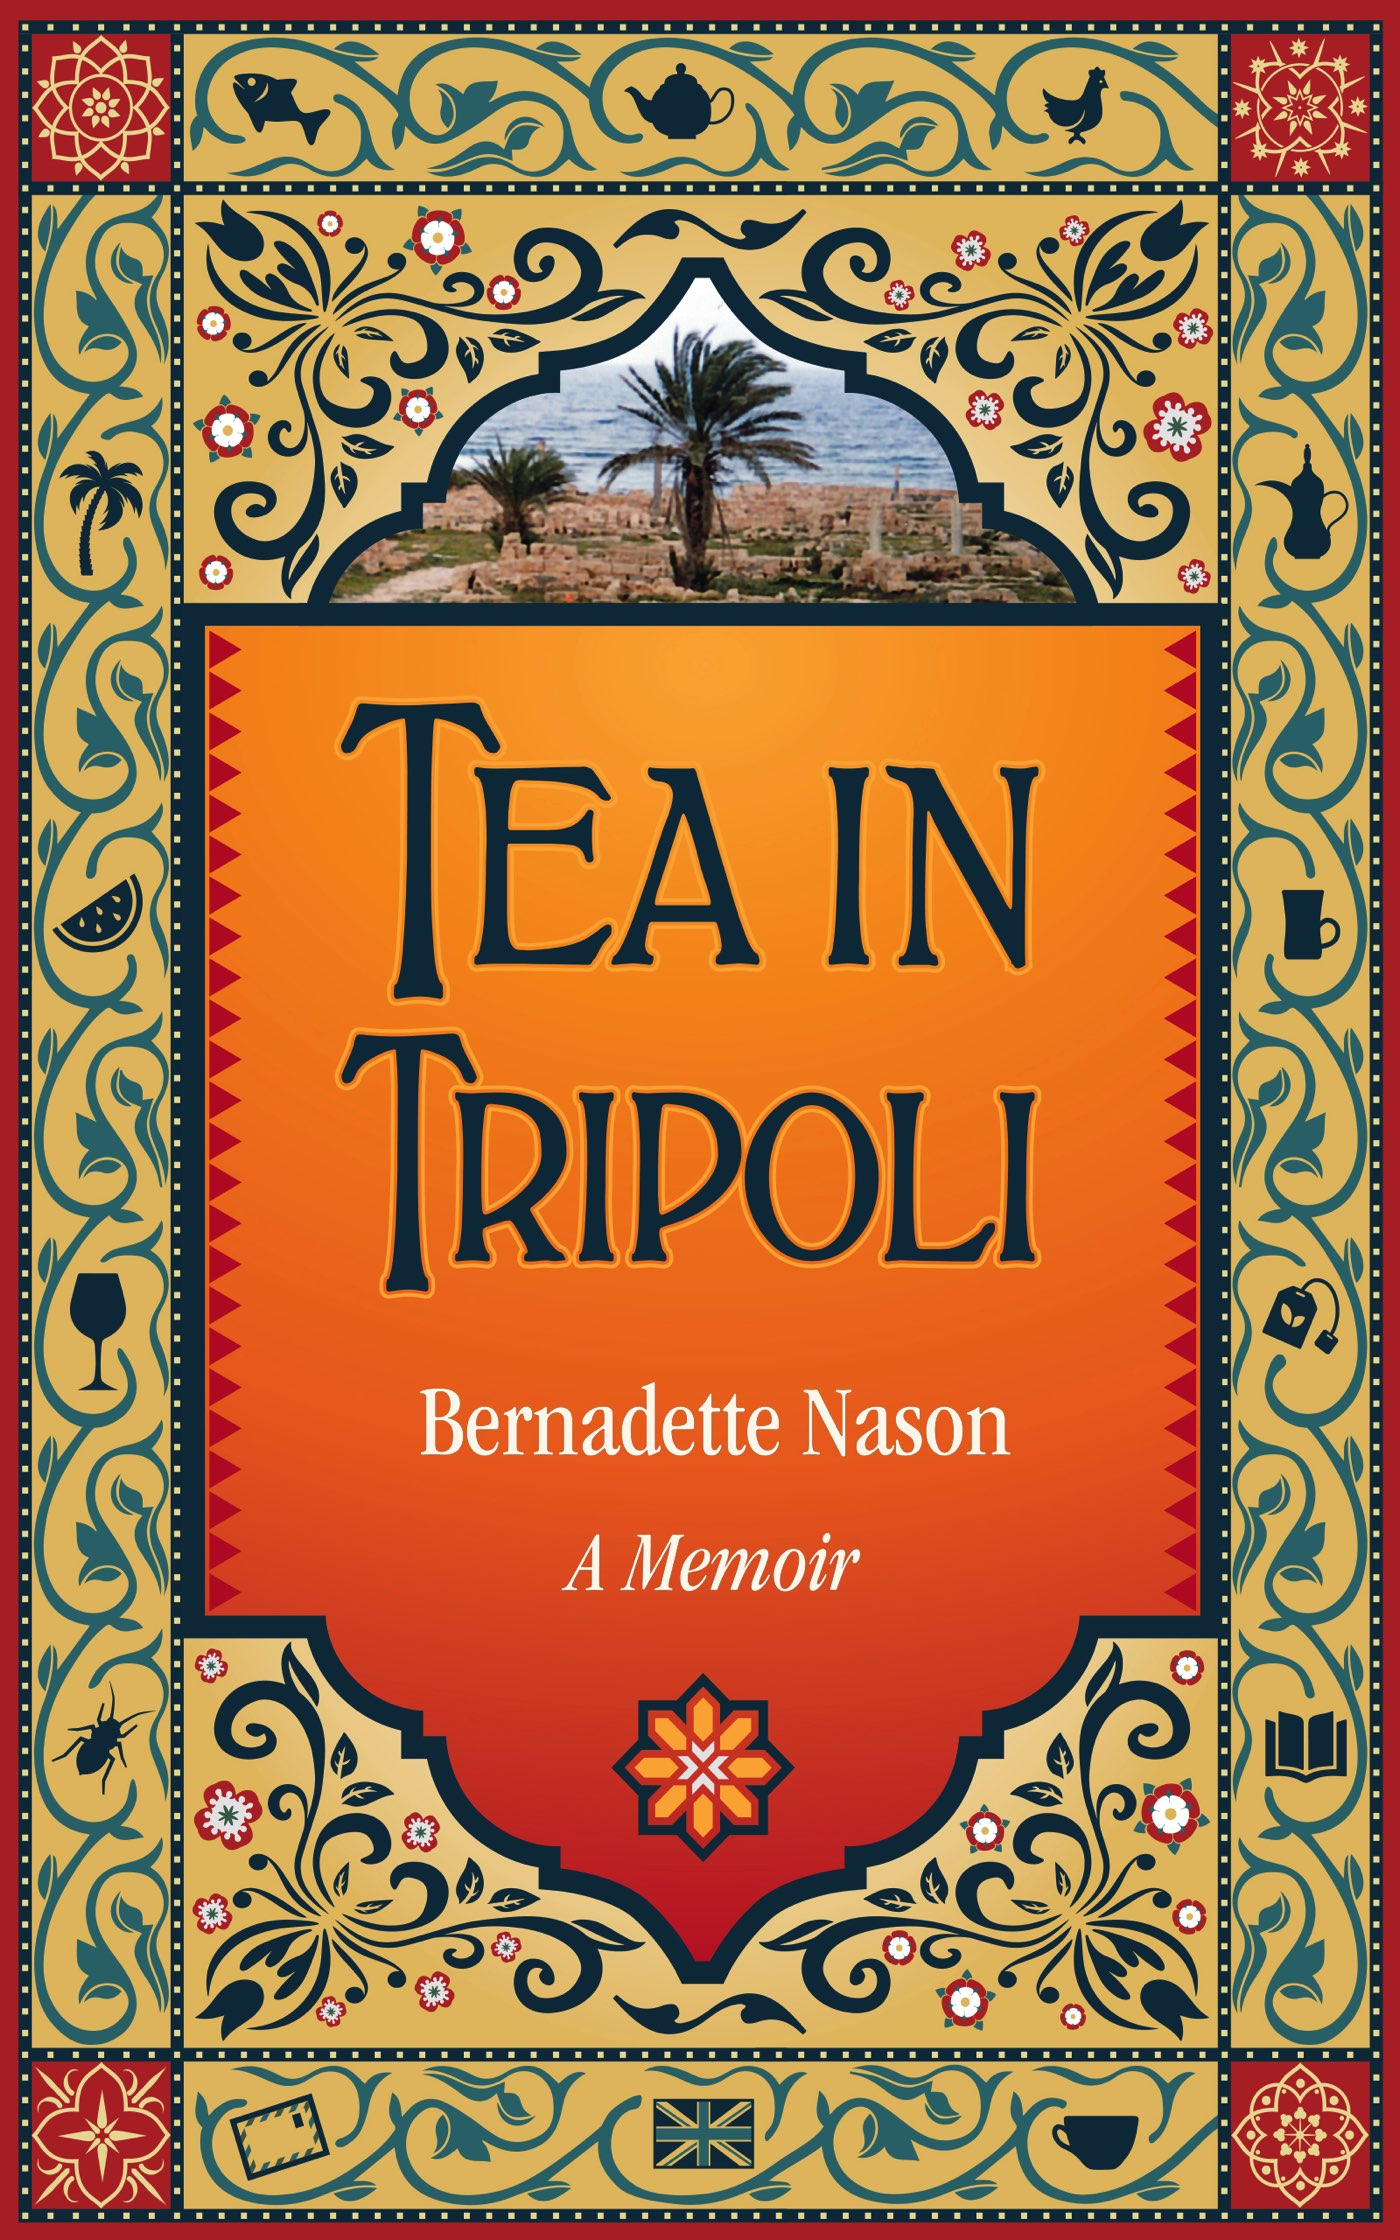 Tea in Tripoli by Bernadette Nason